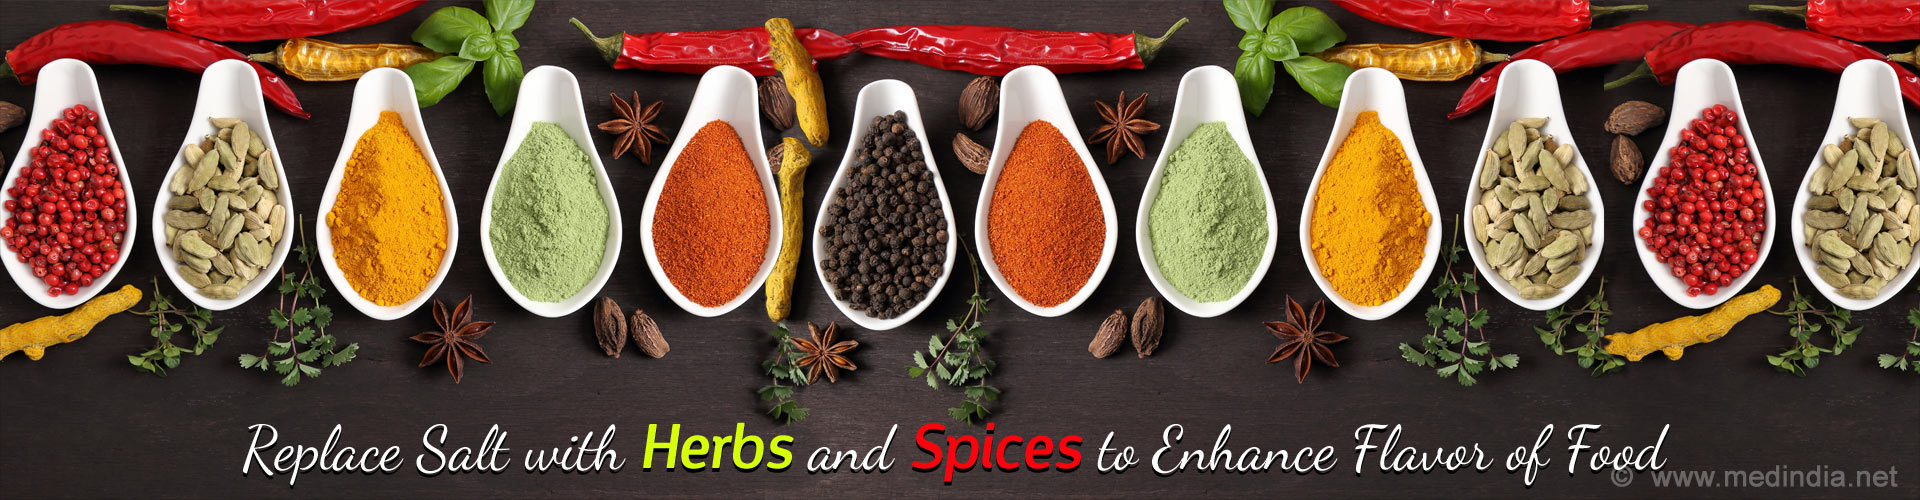 Replace Salt with Herbs and Spices to Enhance Flavor of Food